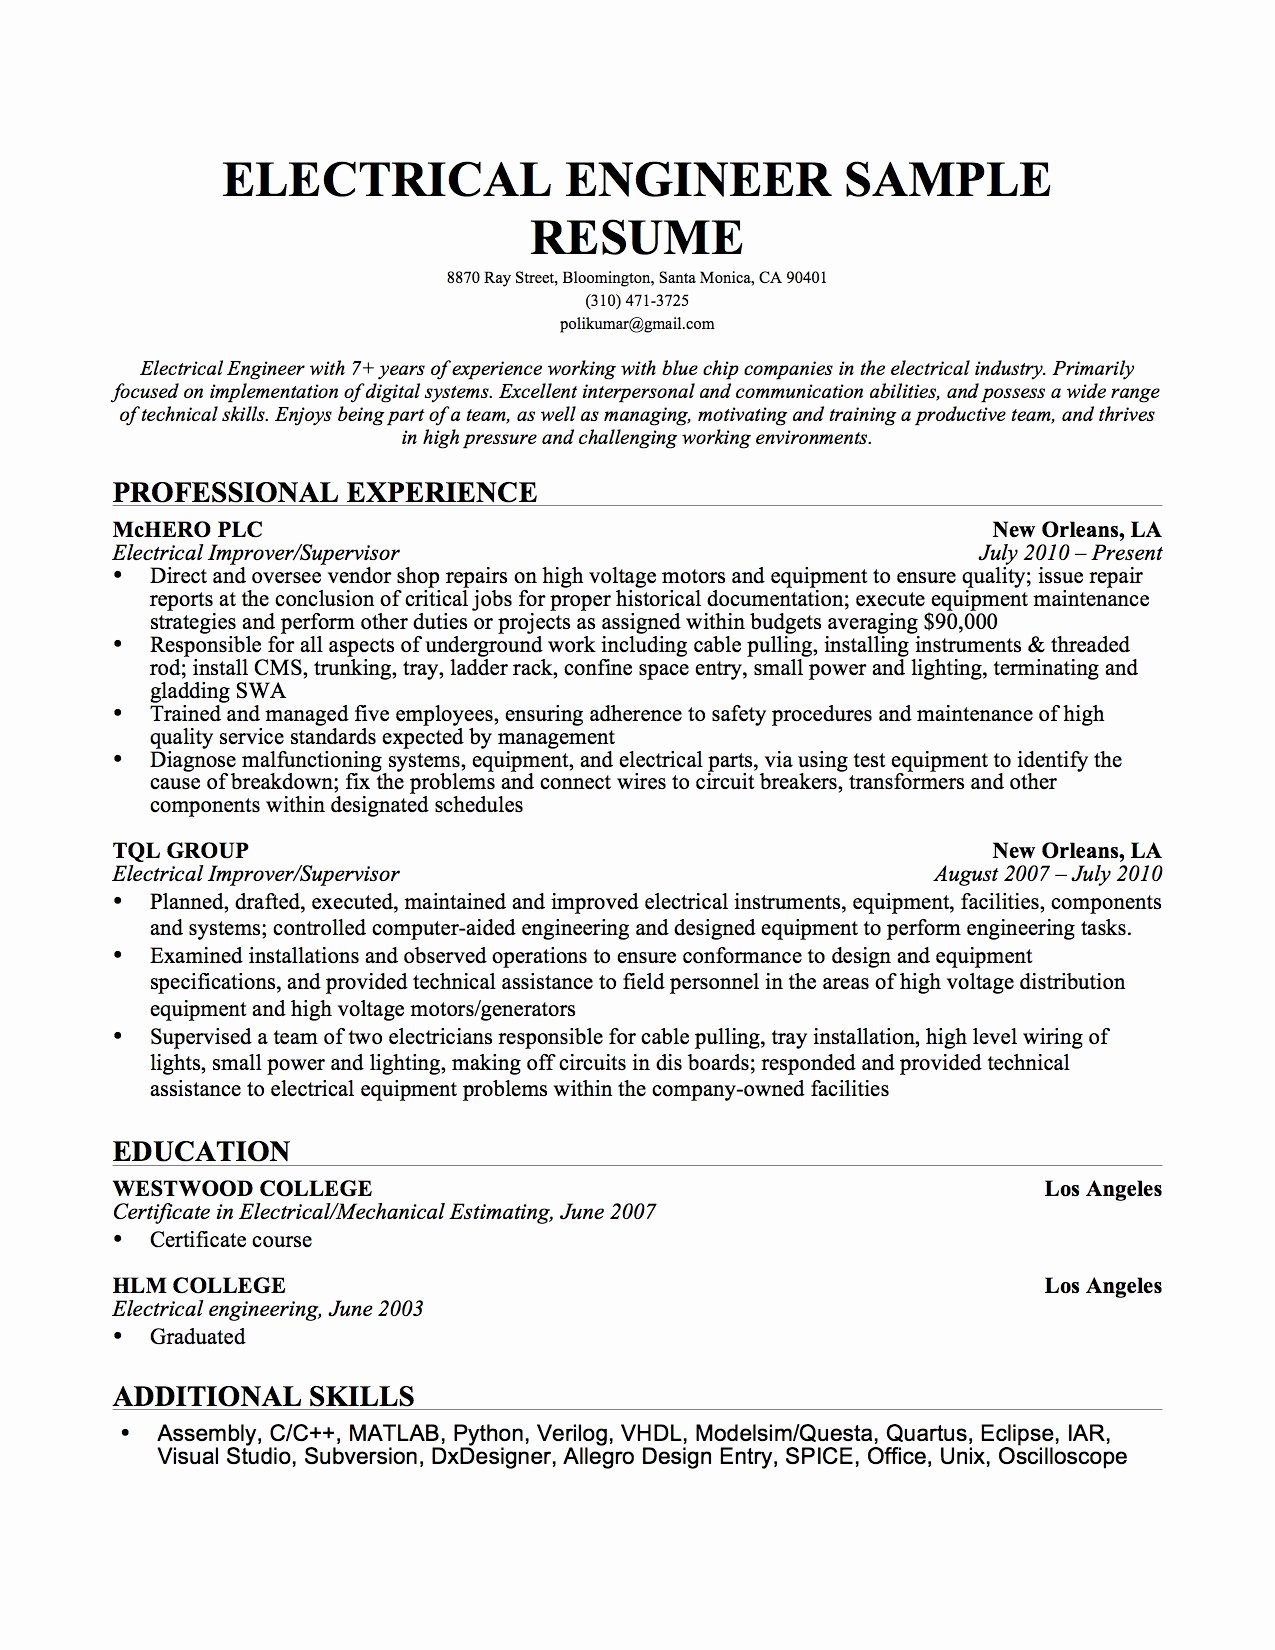 Electrical Engineer Resume Sample Awesome Resume format Resume format Download Electrical Engineering